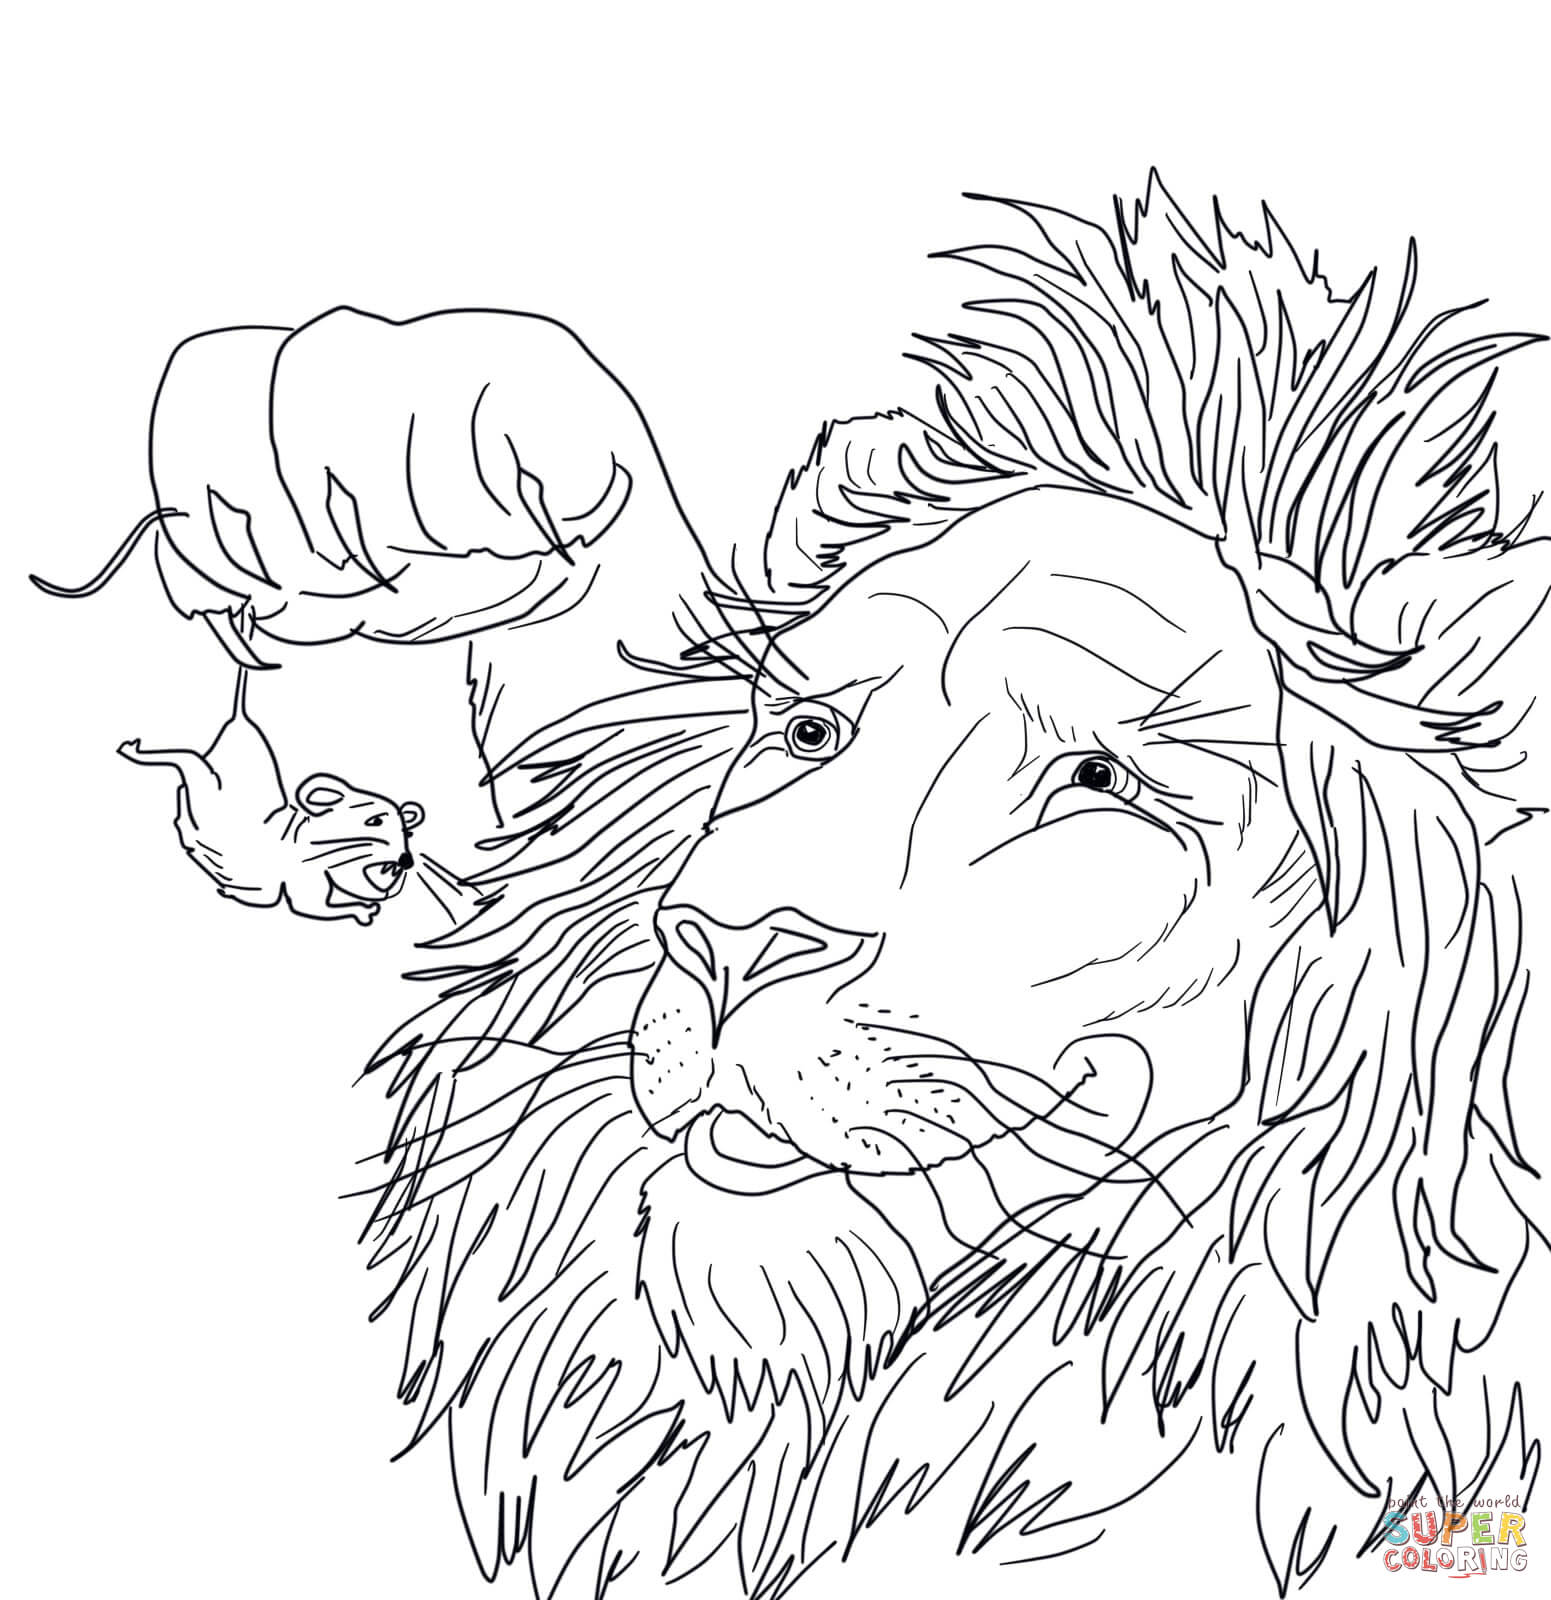 The Big Lion Caught A Tiny Mouse Coloring Page